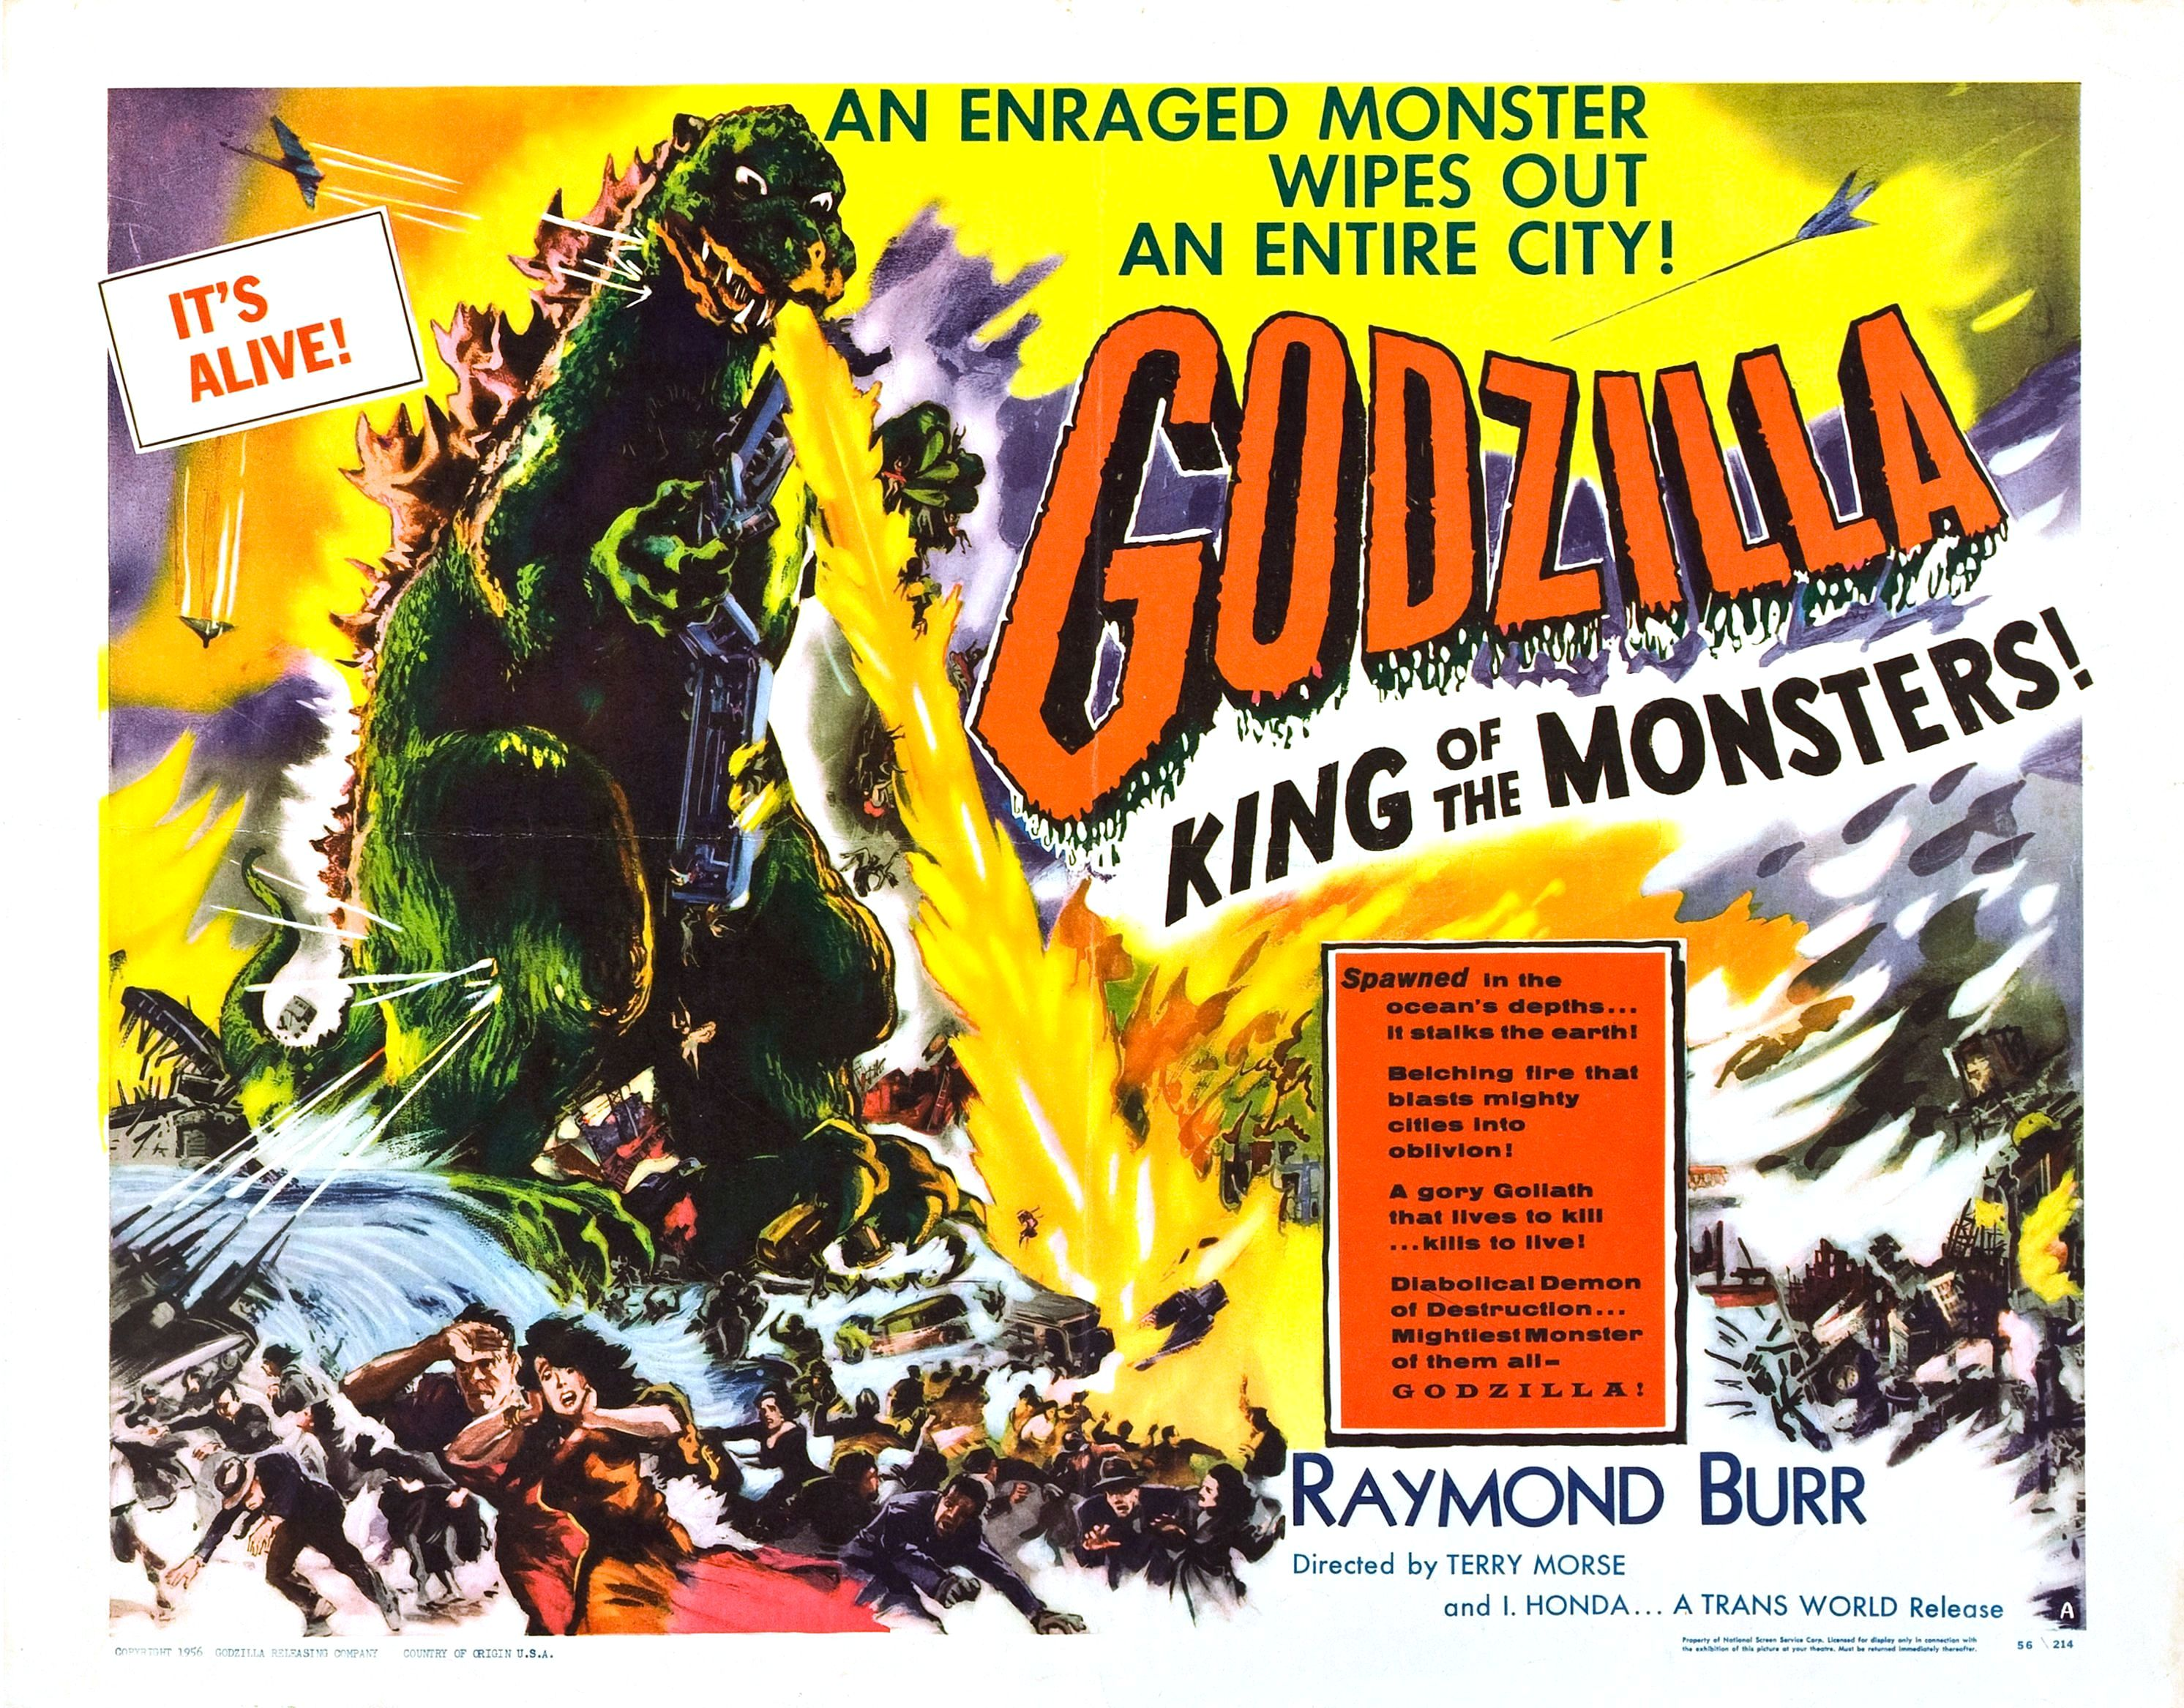 Godzilla: Monster, Metaphor, Pop Icon | The New York Public